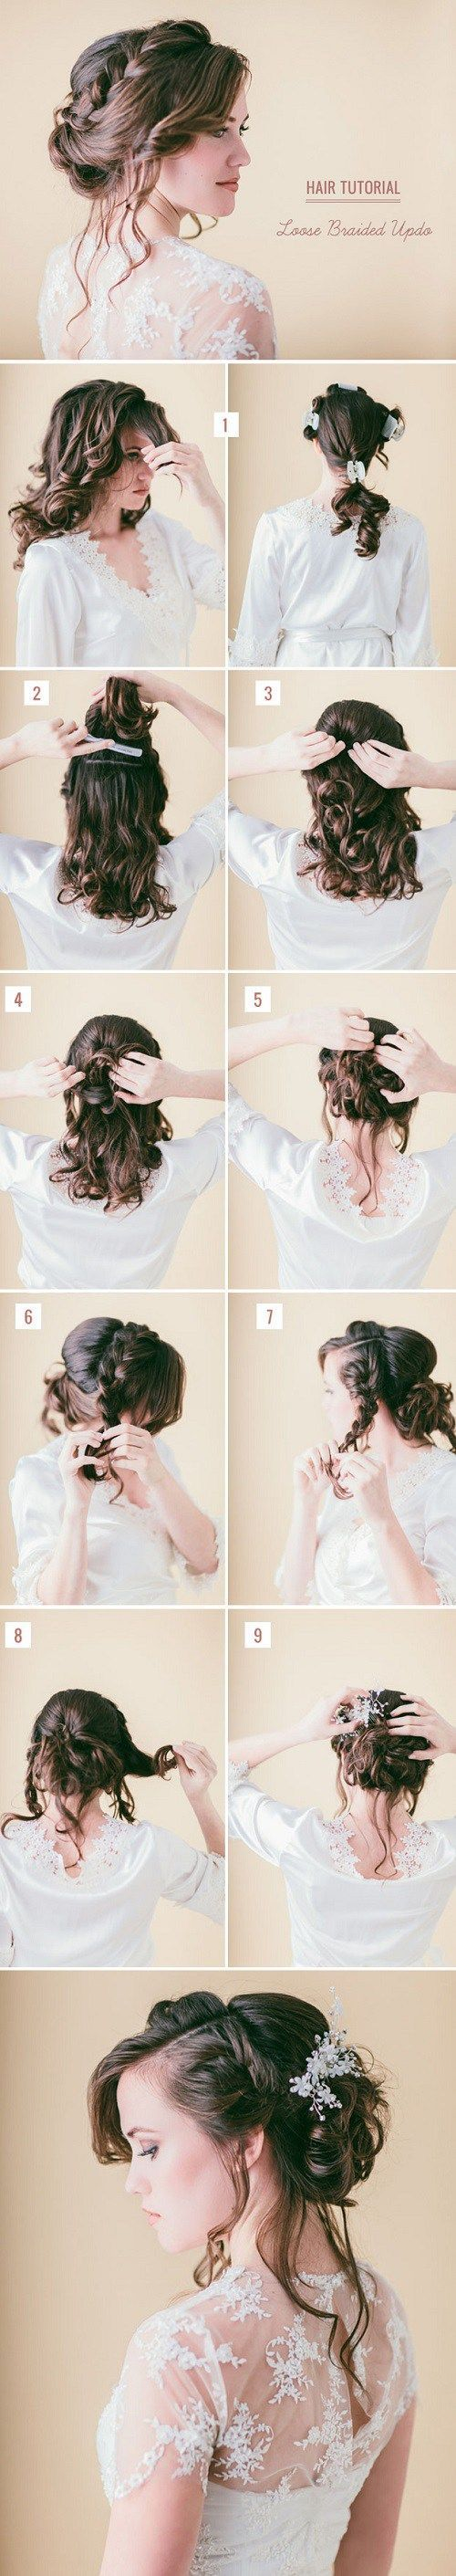 best hairstyles images on pinterest hair ideas hairstyle